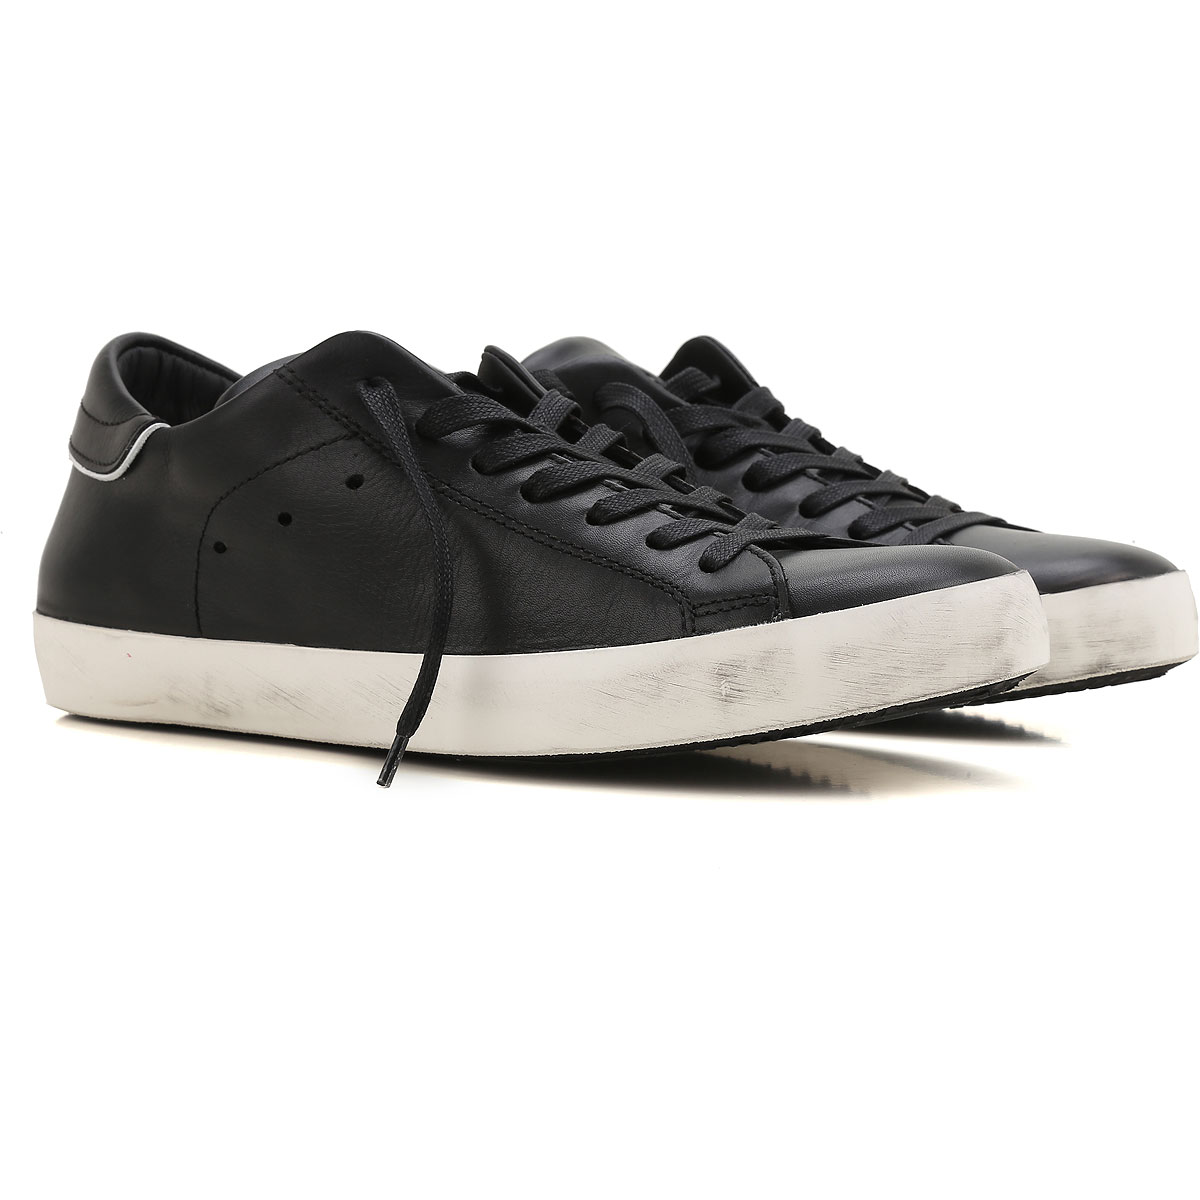 Philippe Model Sneakers for Men On Sale in Outlet, Black, Leather, 2019, 10.5 7.5